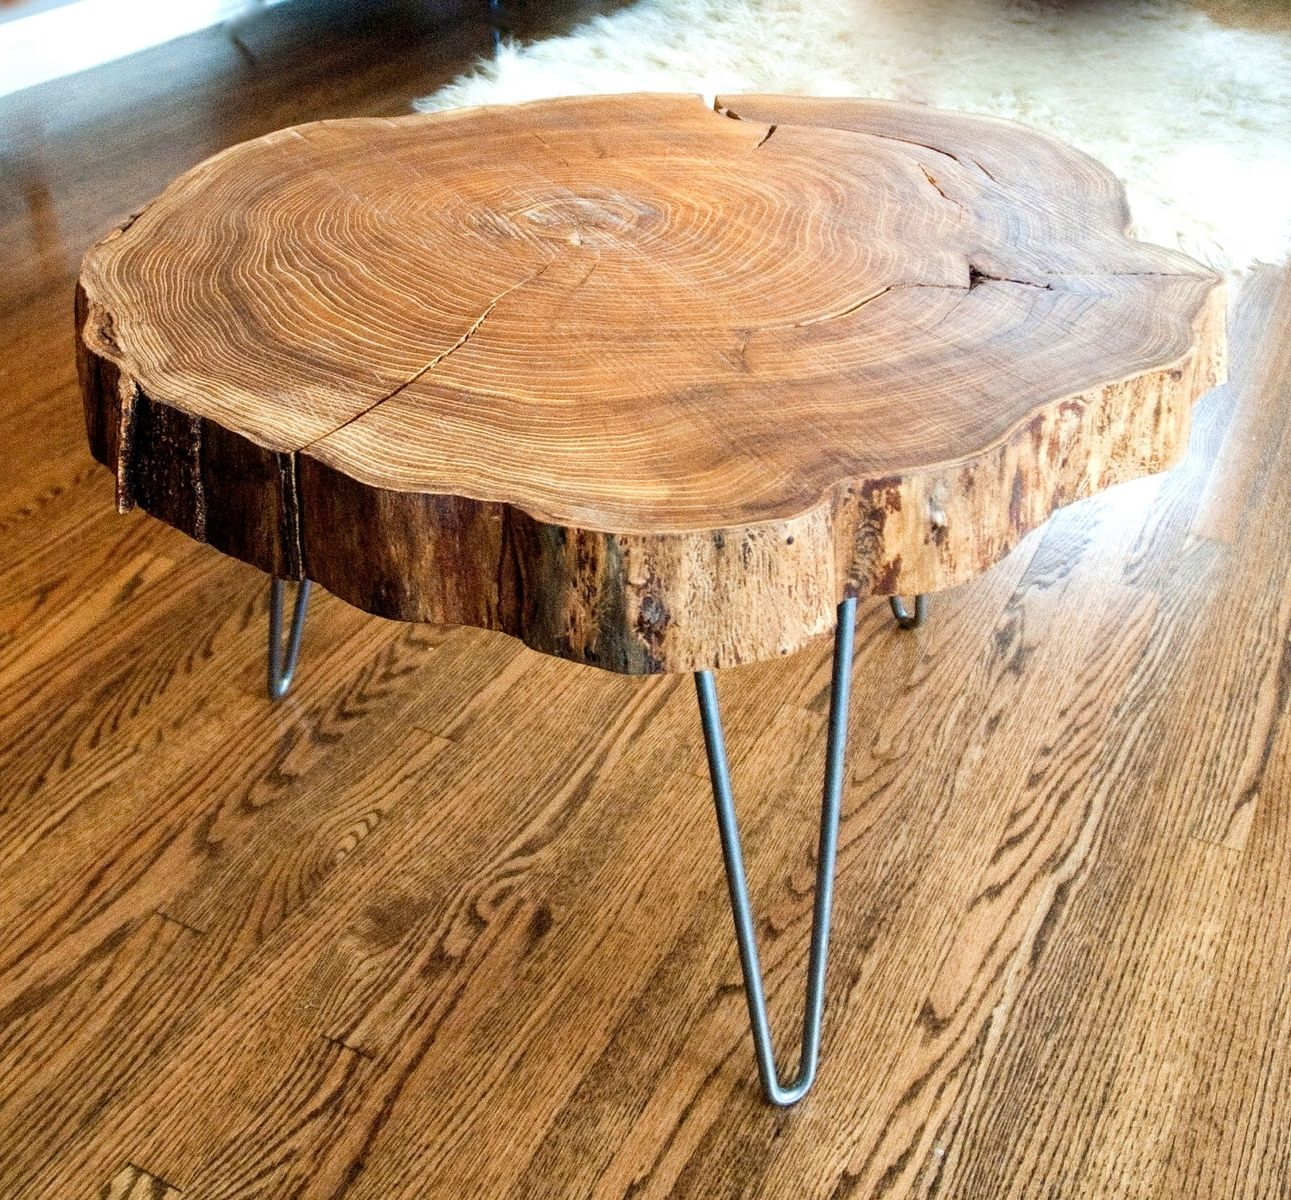 custom made natural live edge round slab side table coffee accent brown with steel legs lap desk winsome wood dresser lucite pedestal modern floor lamp white kitchen breakfast